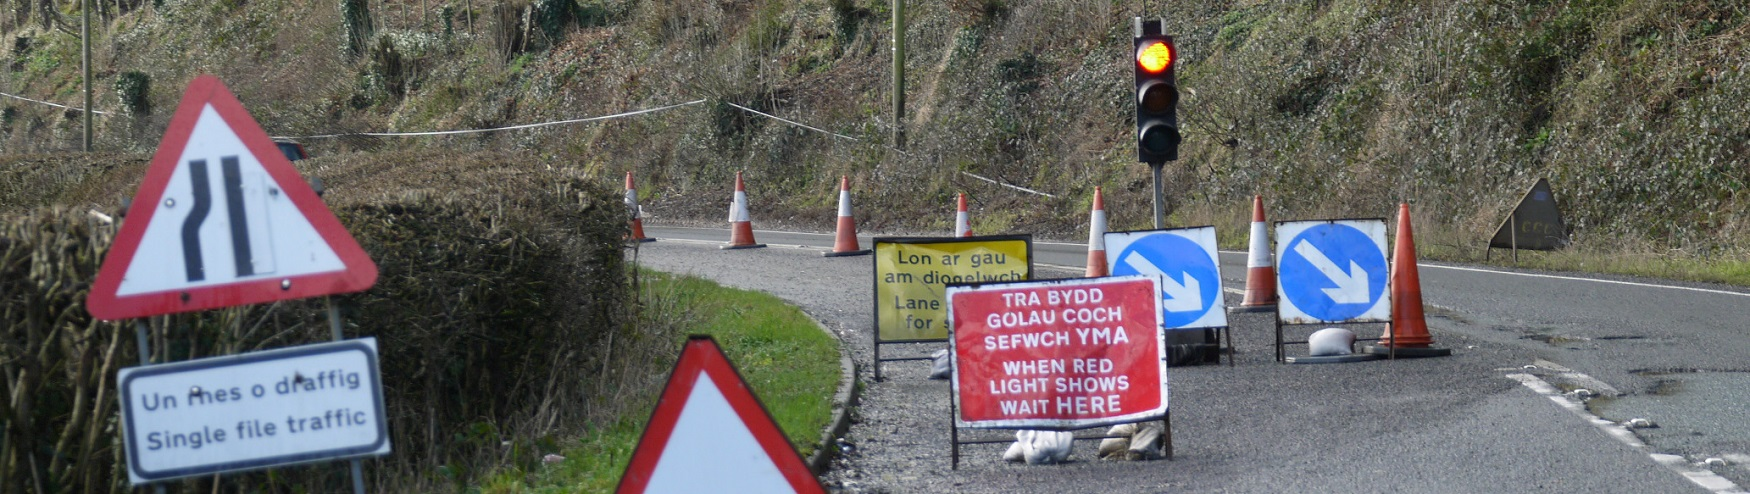 roadworks_header.jpg